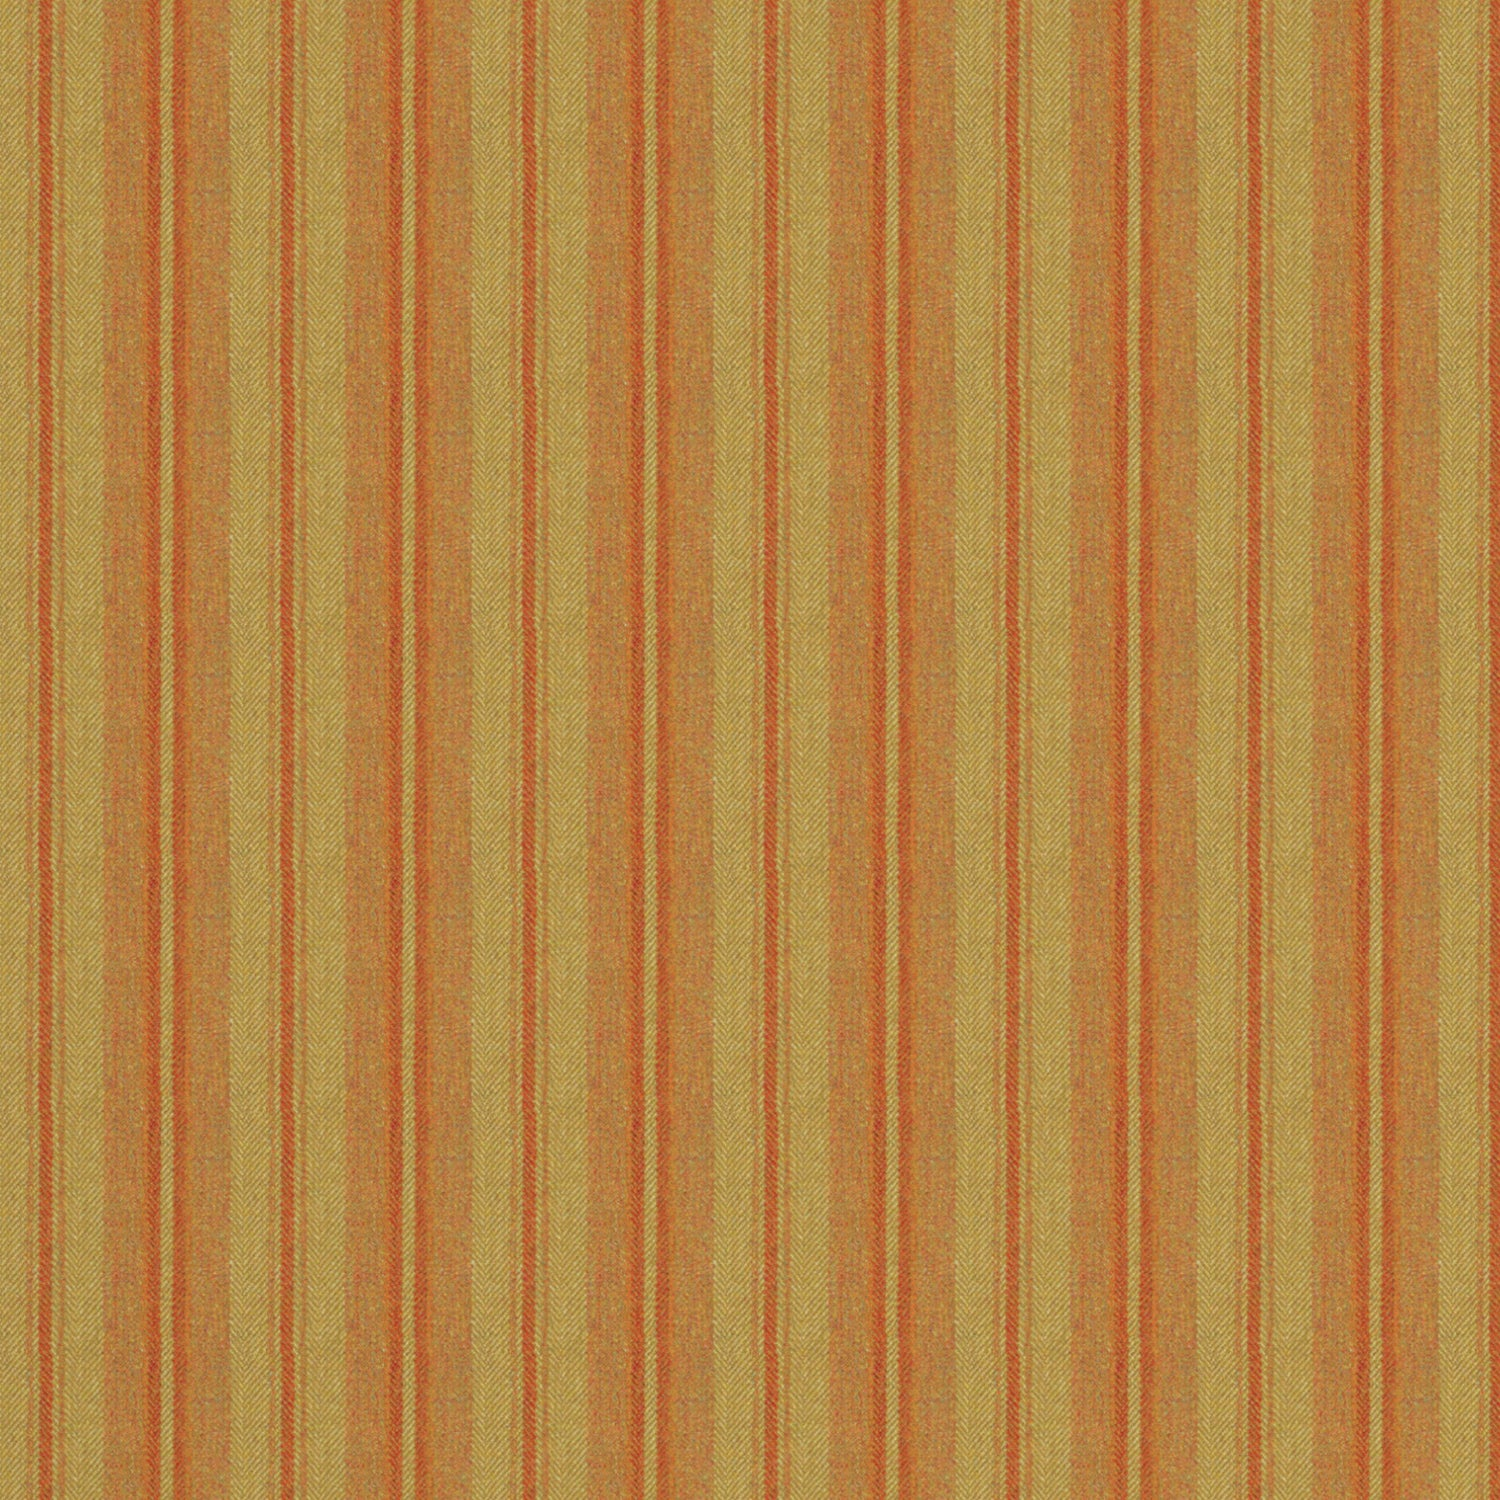 Fabric swatch of a luxury Scottish orange and dark neutral wool striped fabric suitable for curtains and upholstery